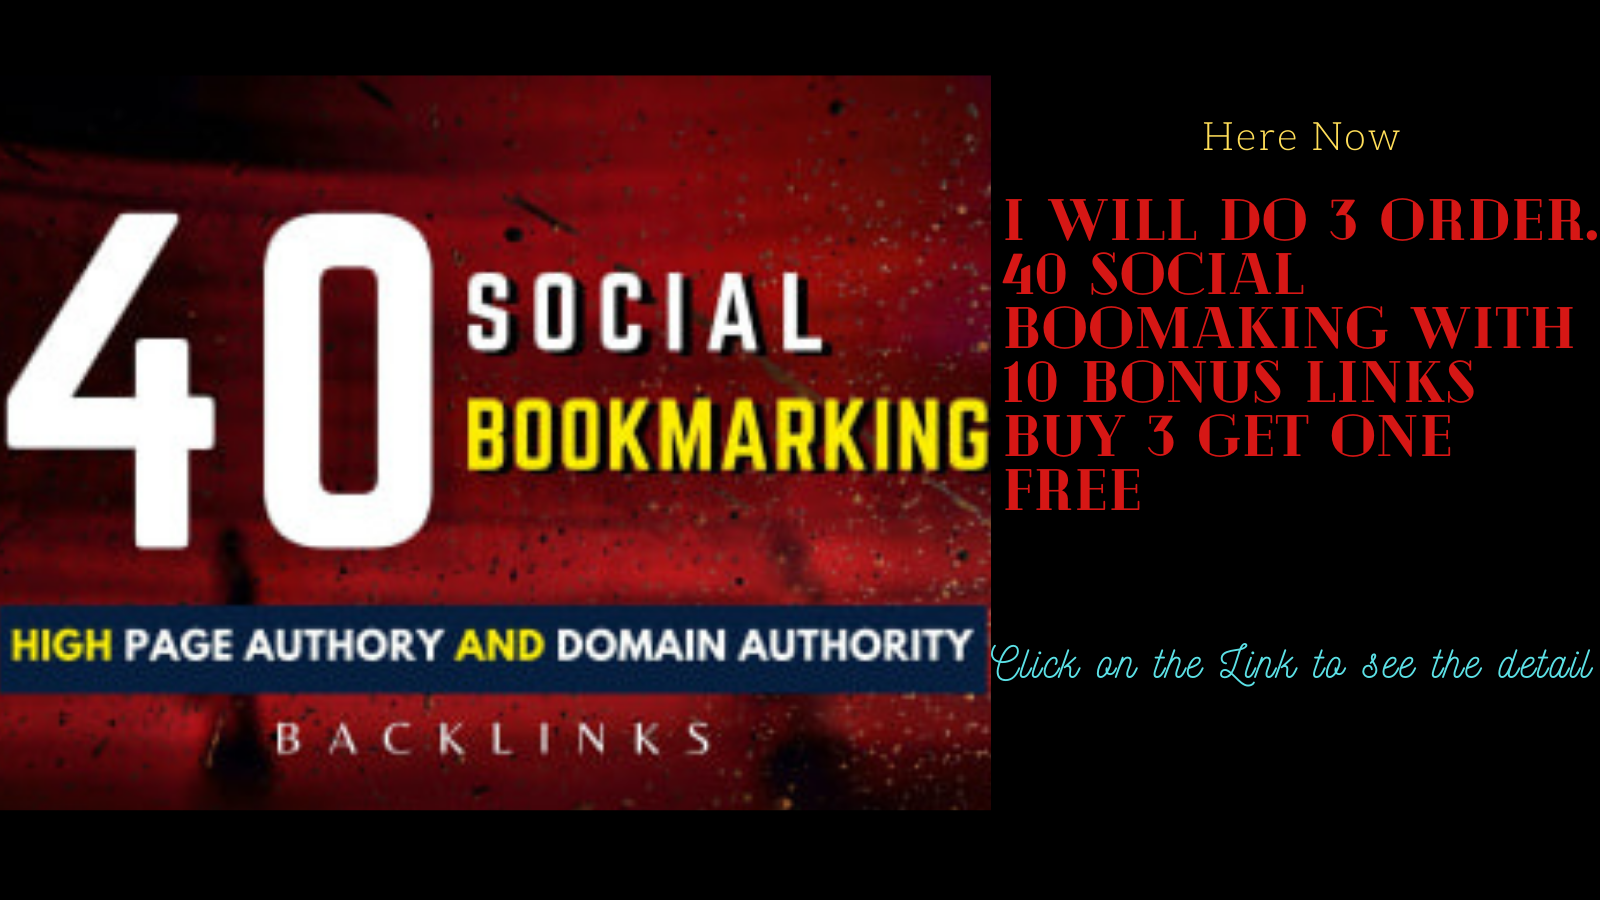 I will do 10 order. 40 social Boomarking High Domain Authority 45 To 90